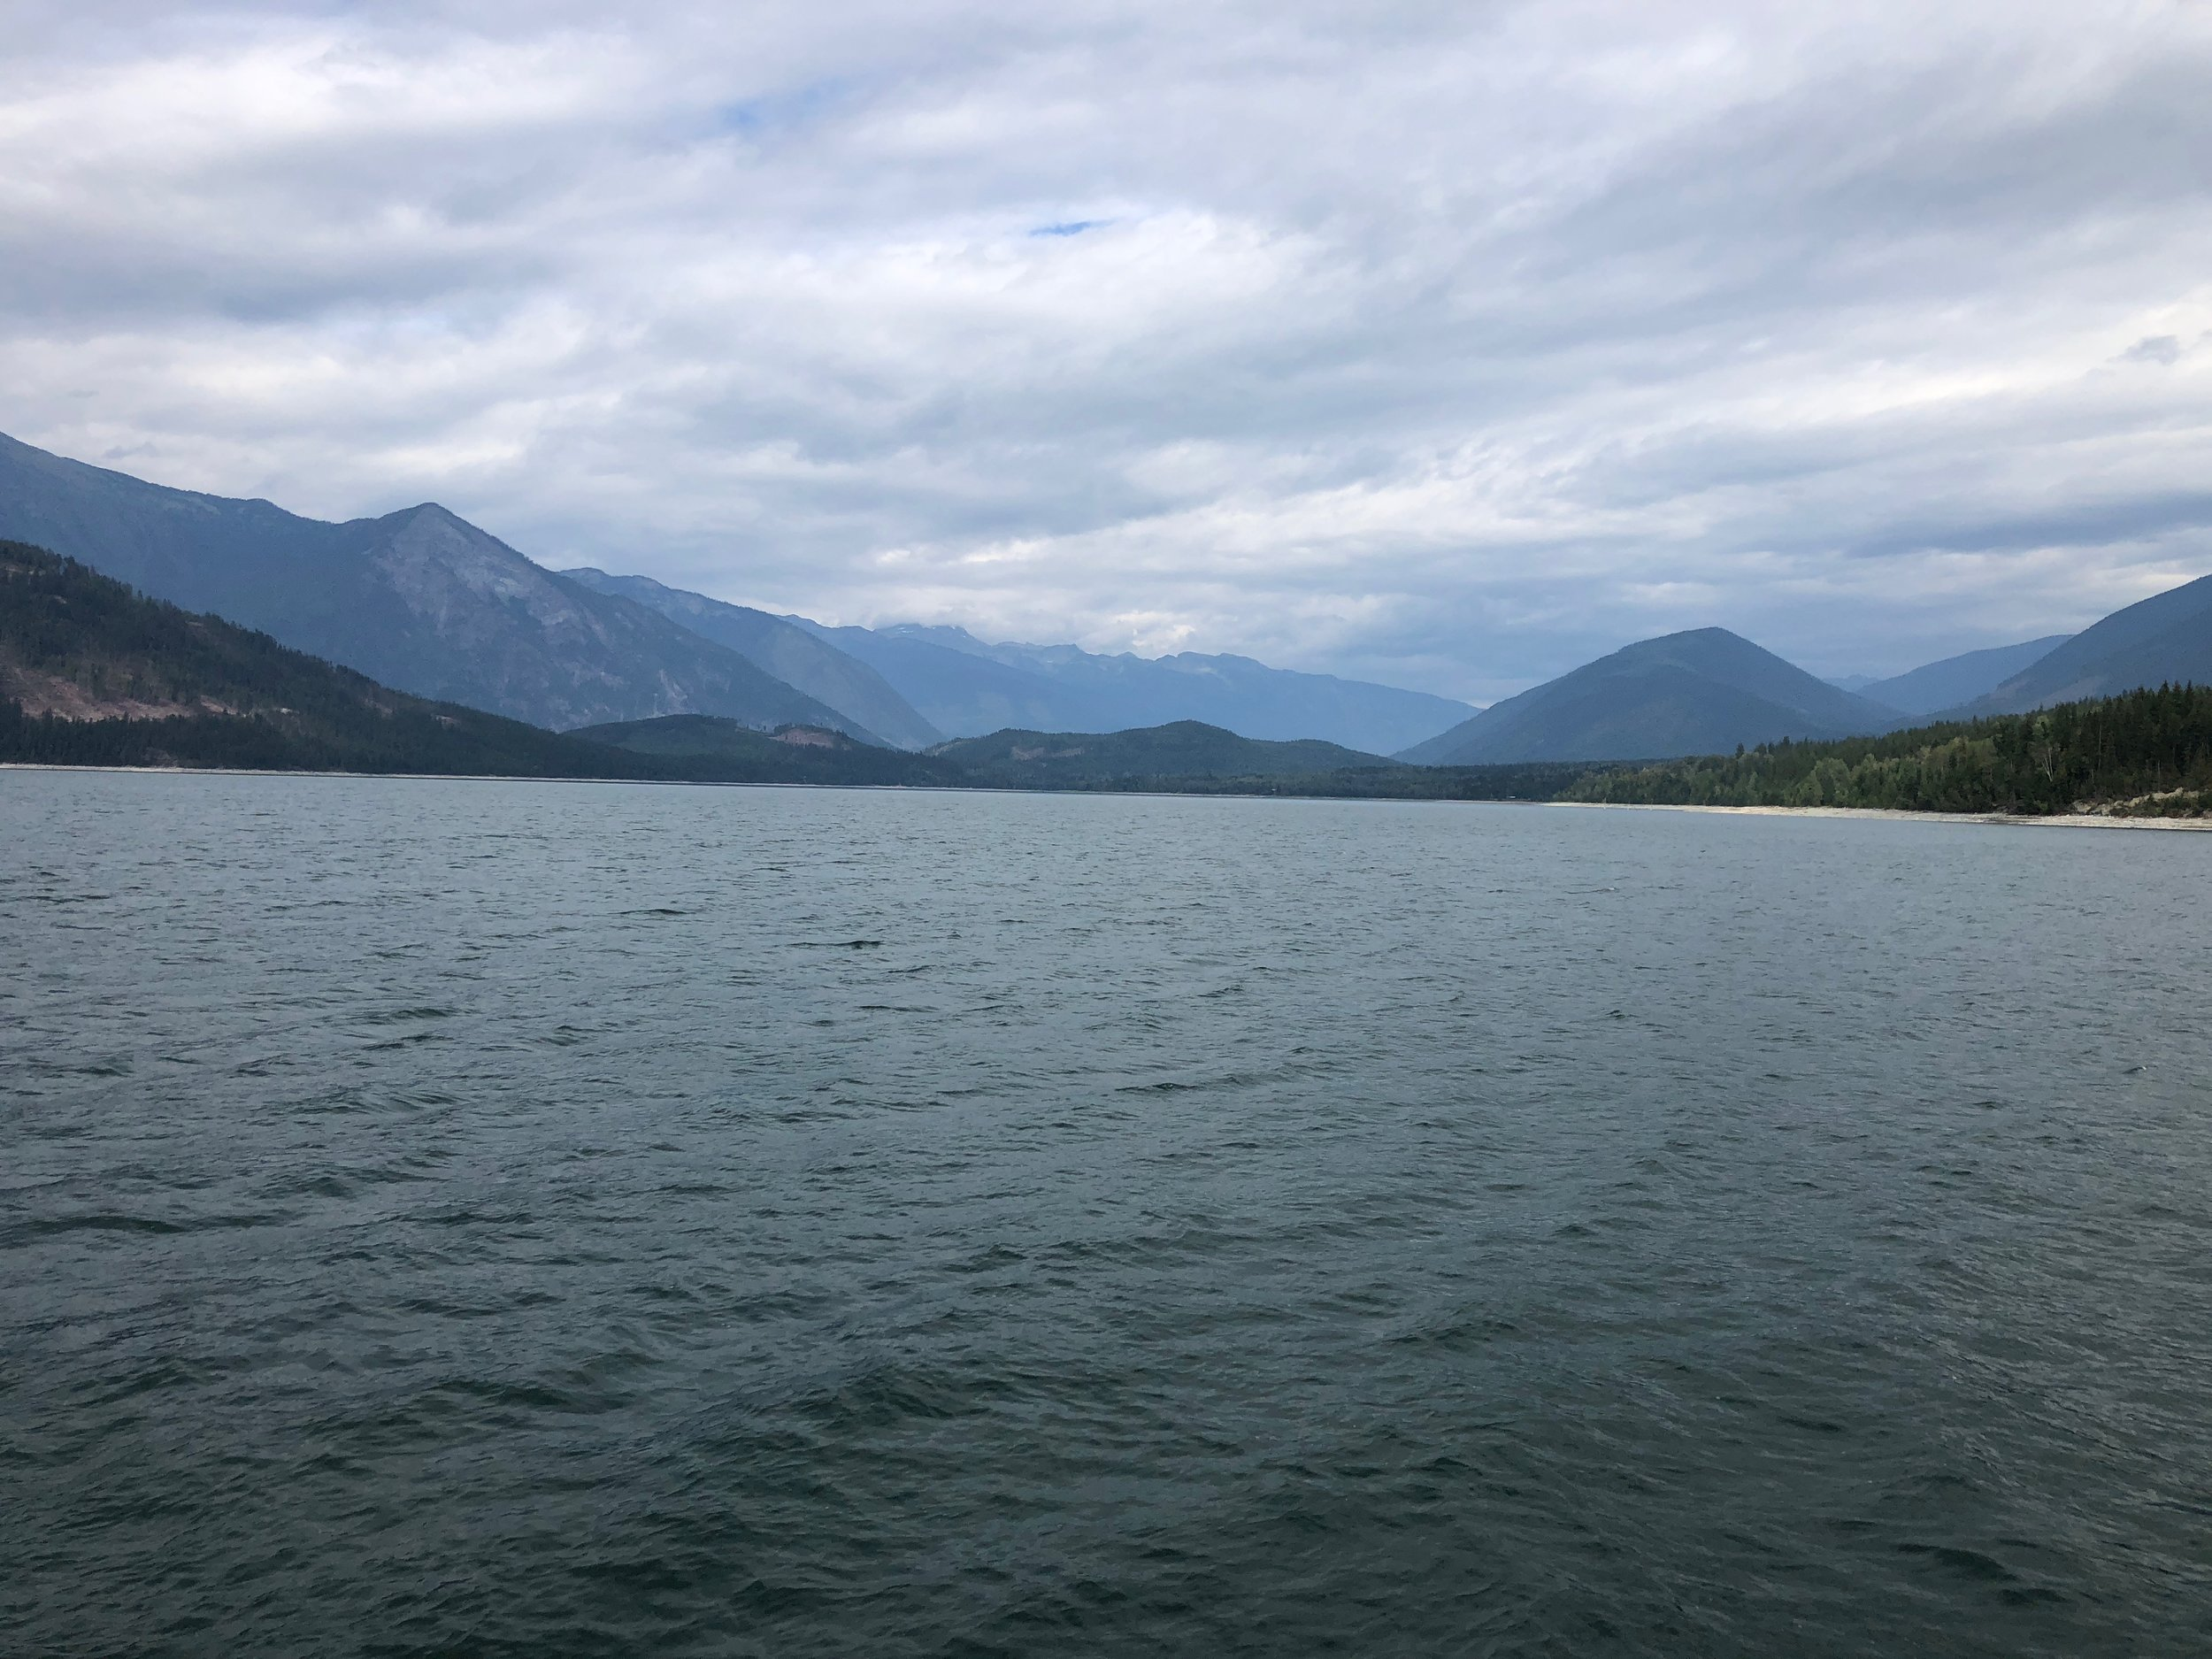 A view from the ferry